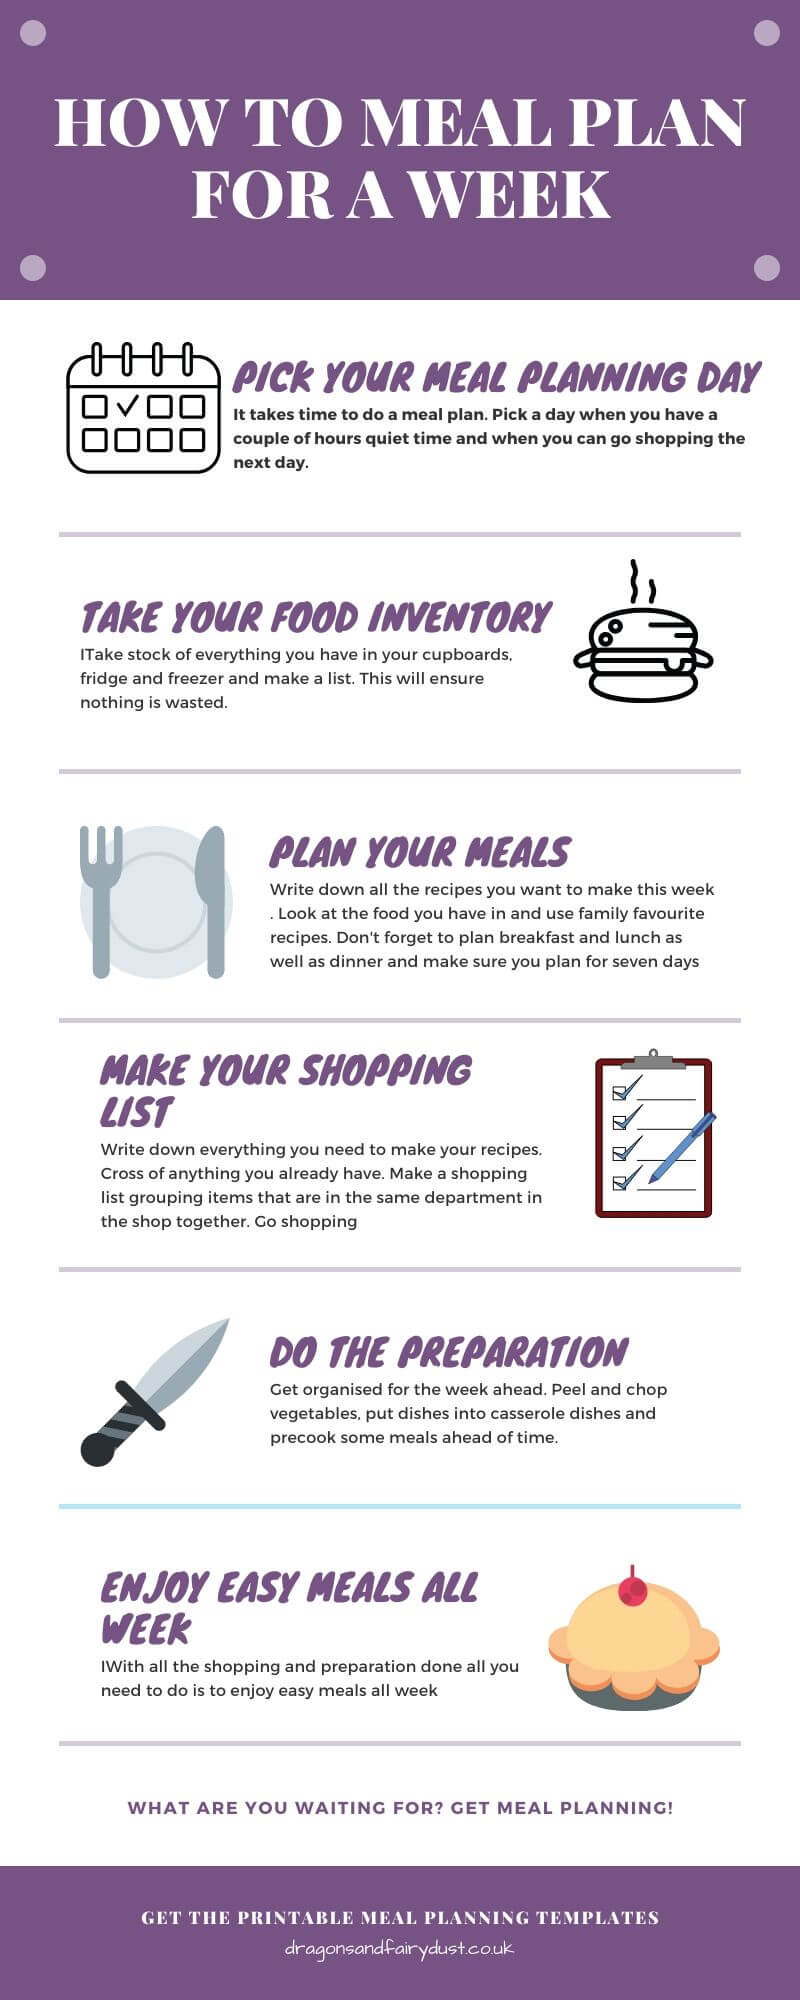 Simple steps to help you meal plan for a week